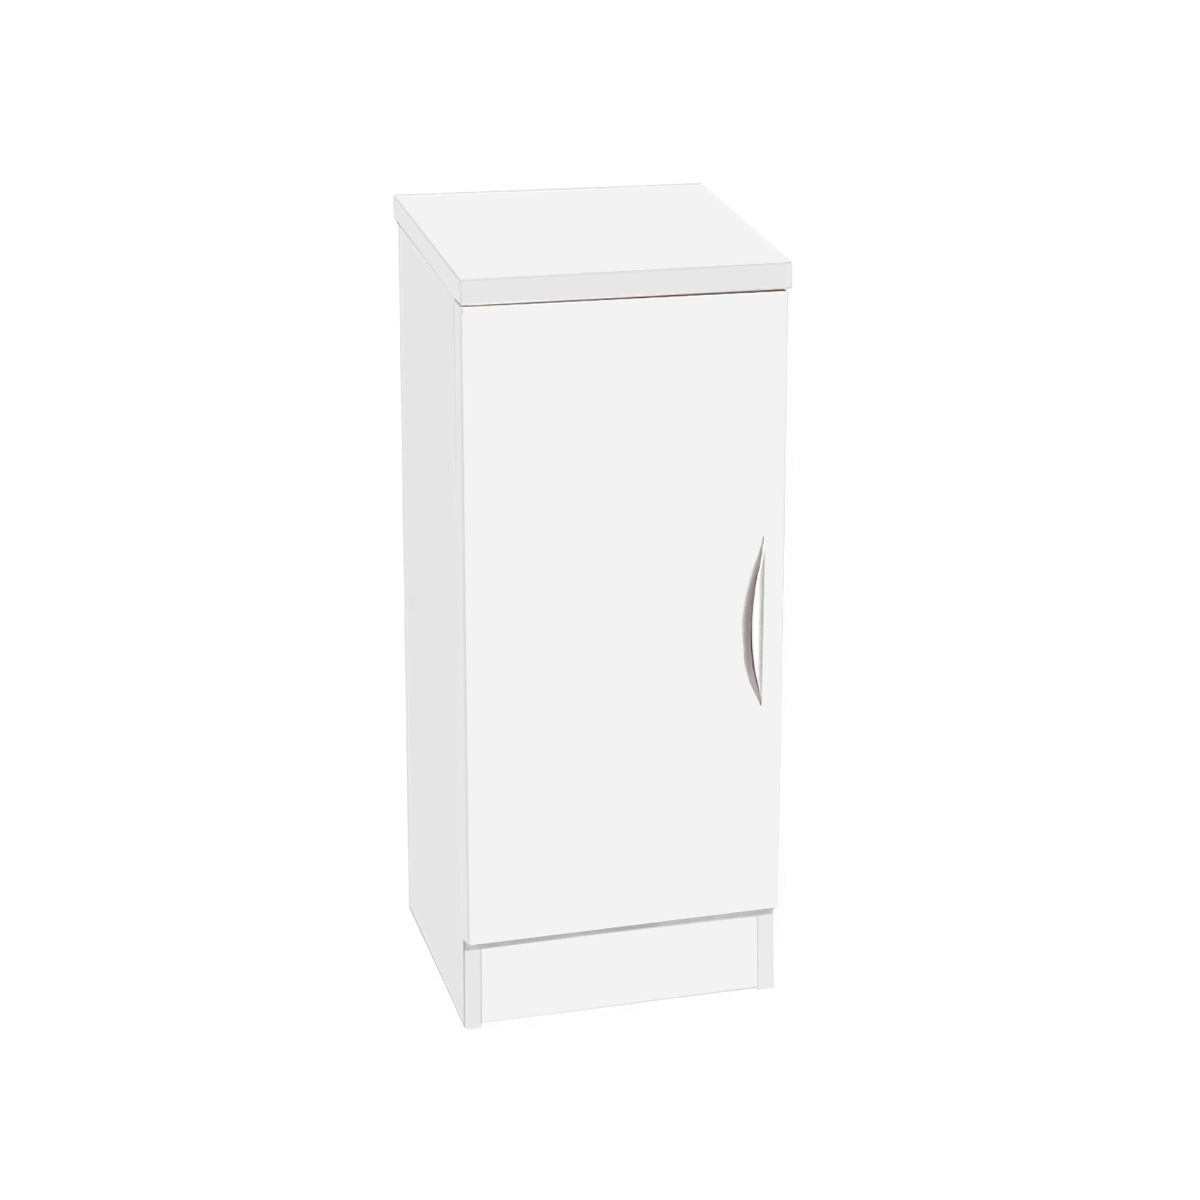 R White Desk Height Narrow Cupboard 30cm White Satin, White Satin